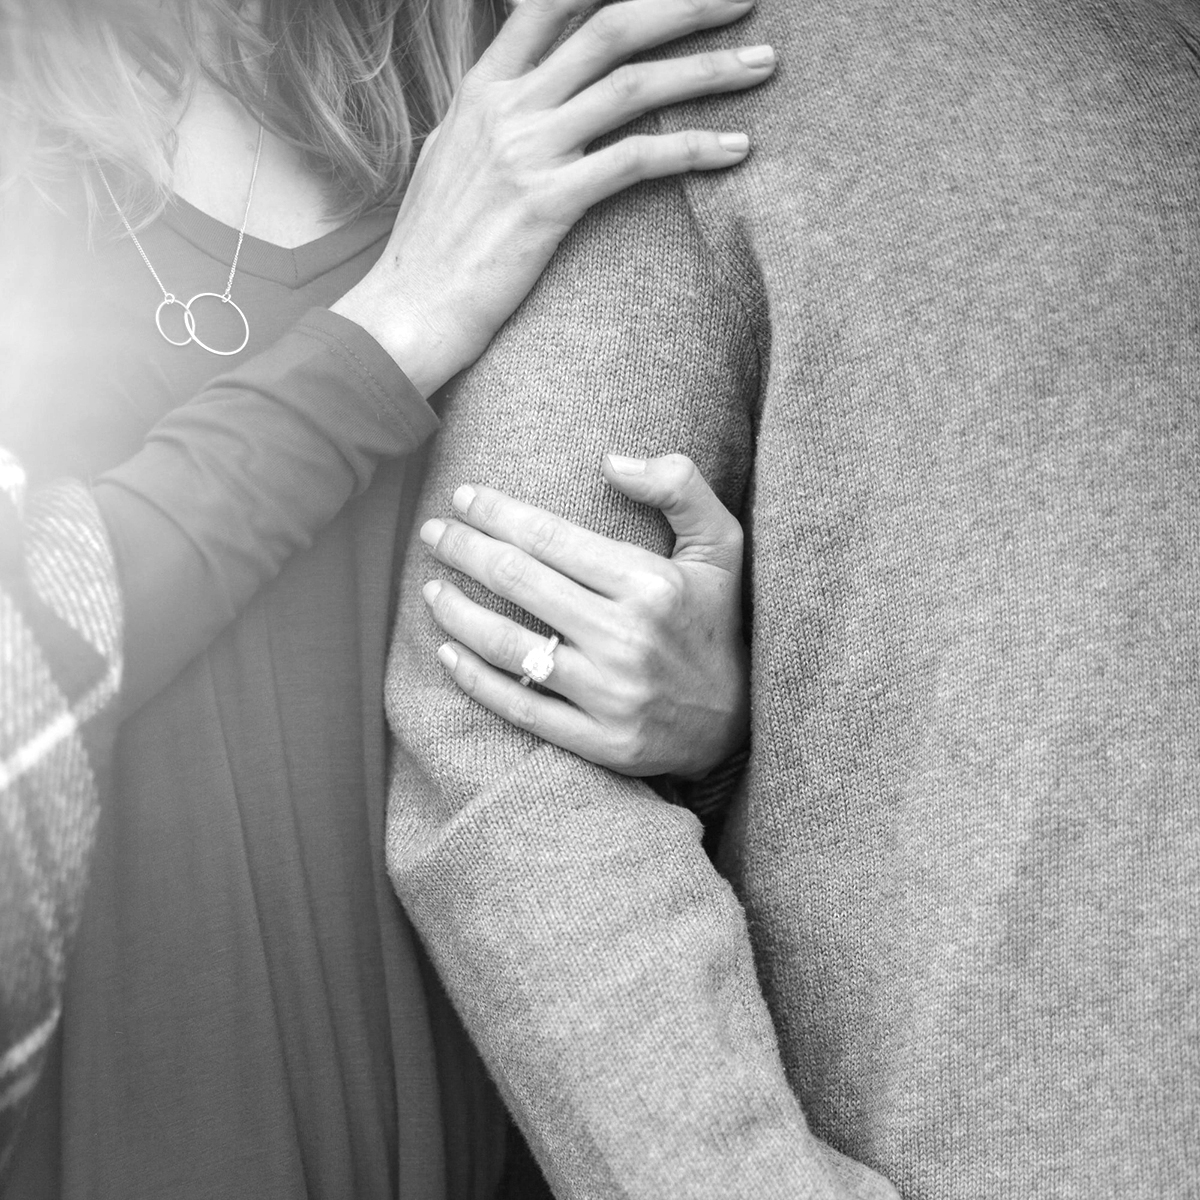 Making Time for Couple Intimacy